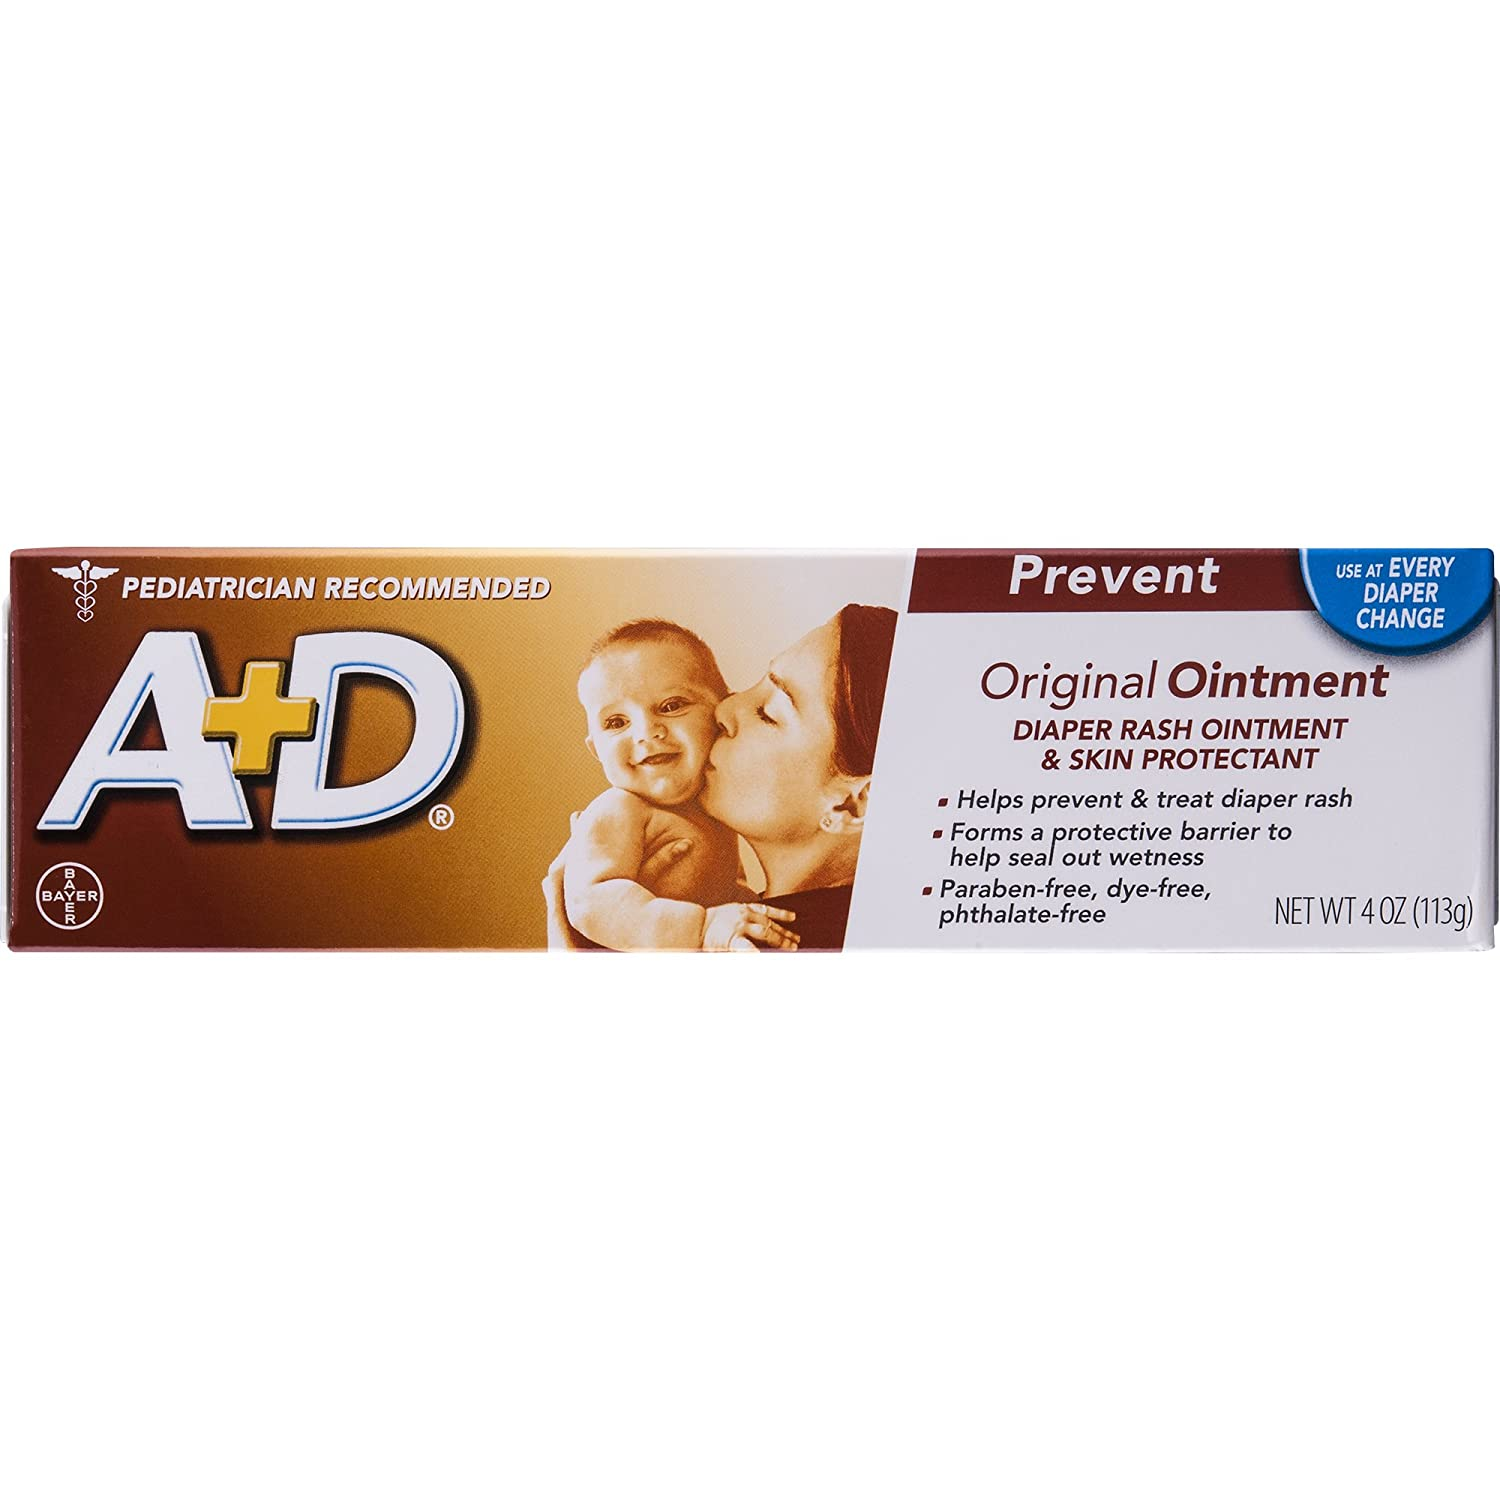 A+D Original Diaper Rash Ointment, Baby Skin Protectant With